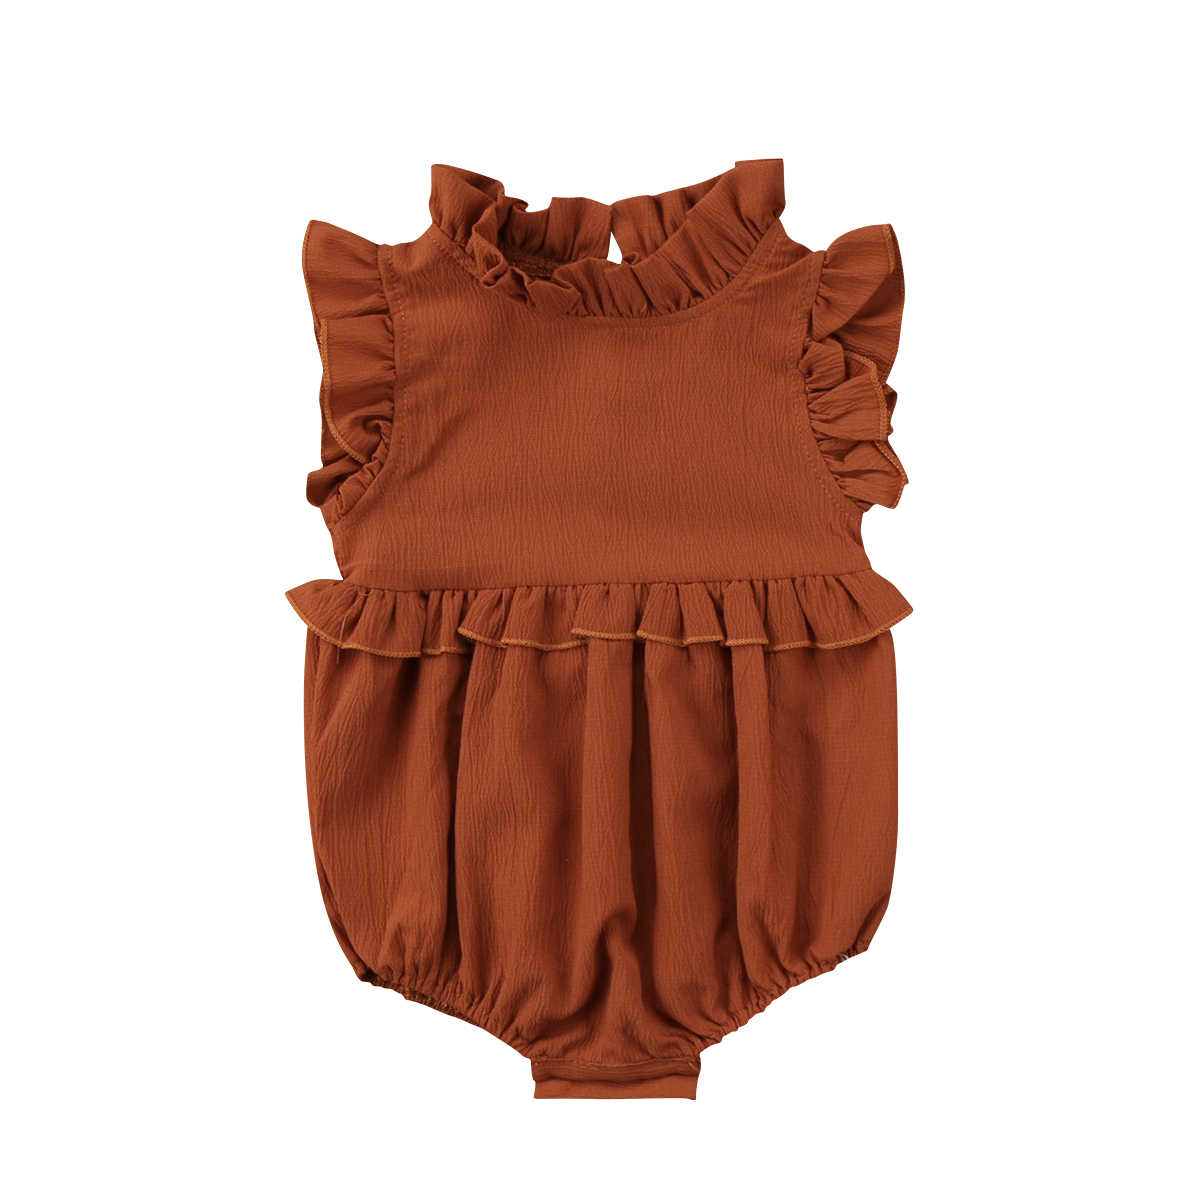 53c4ed15d6d Summer Solid Ruffle Sleeveless Romper Newborn Baby Girls Clothes 2018  Vintage Princess Girls Kid Baby Jumpsuit